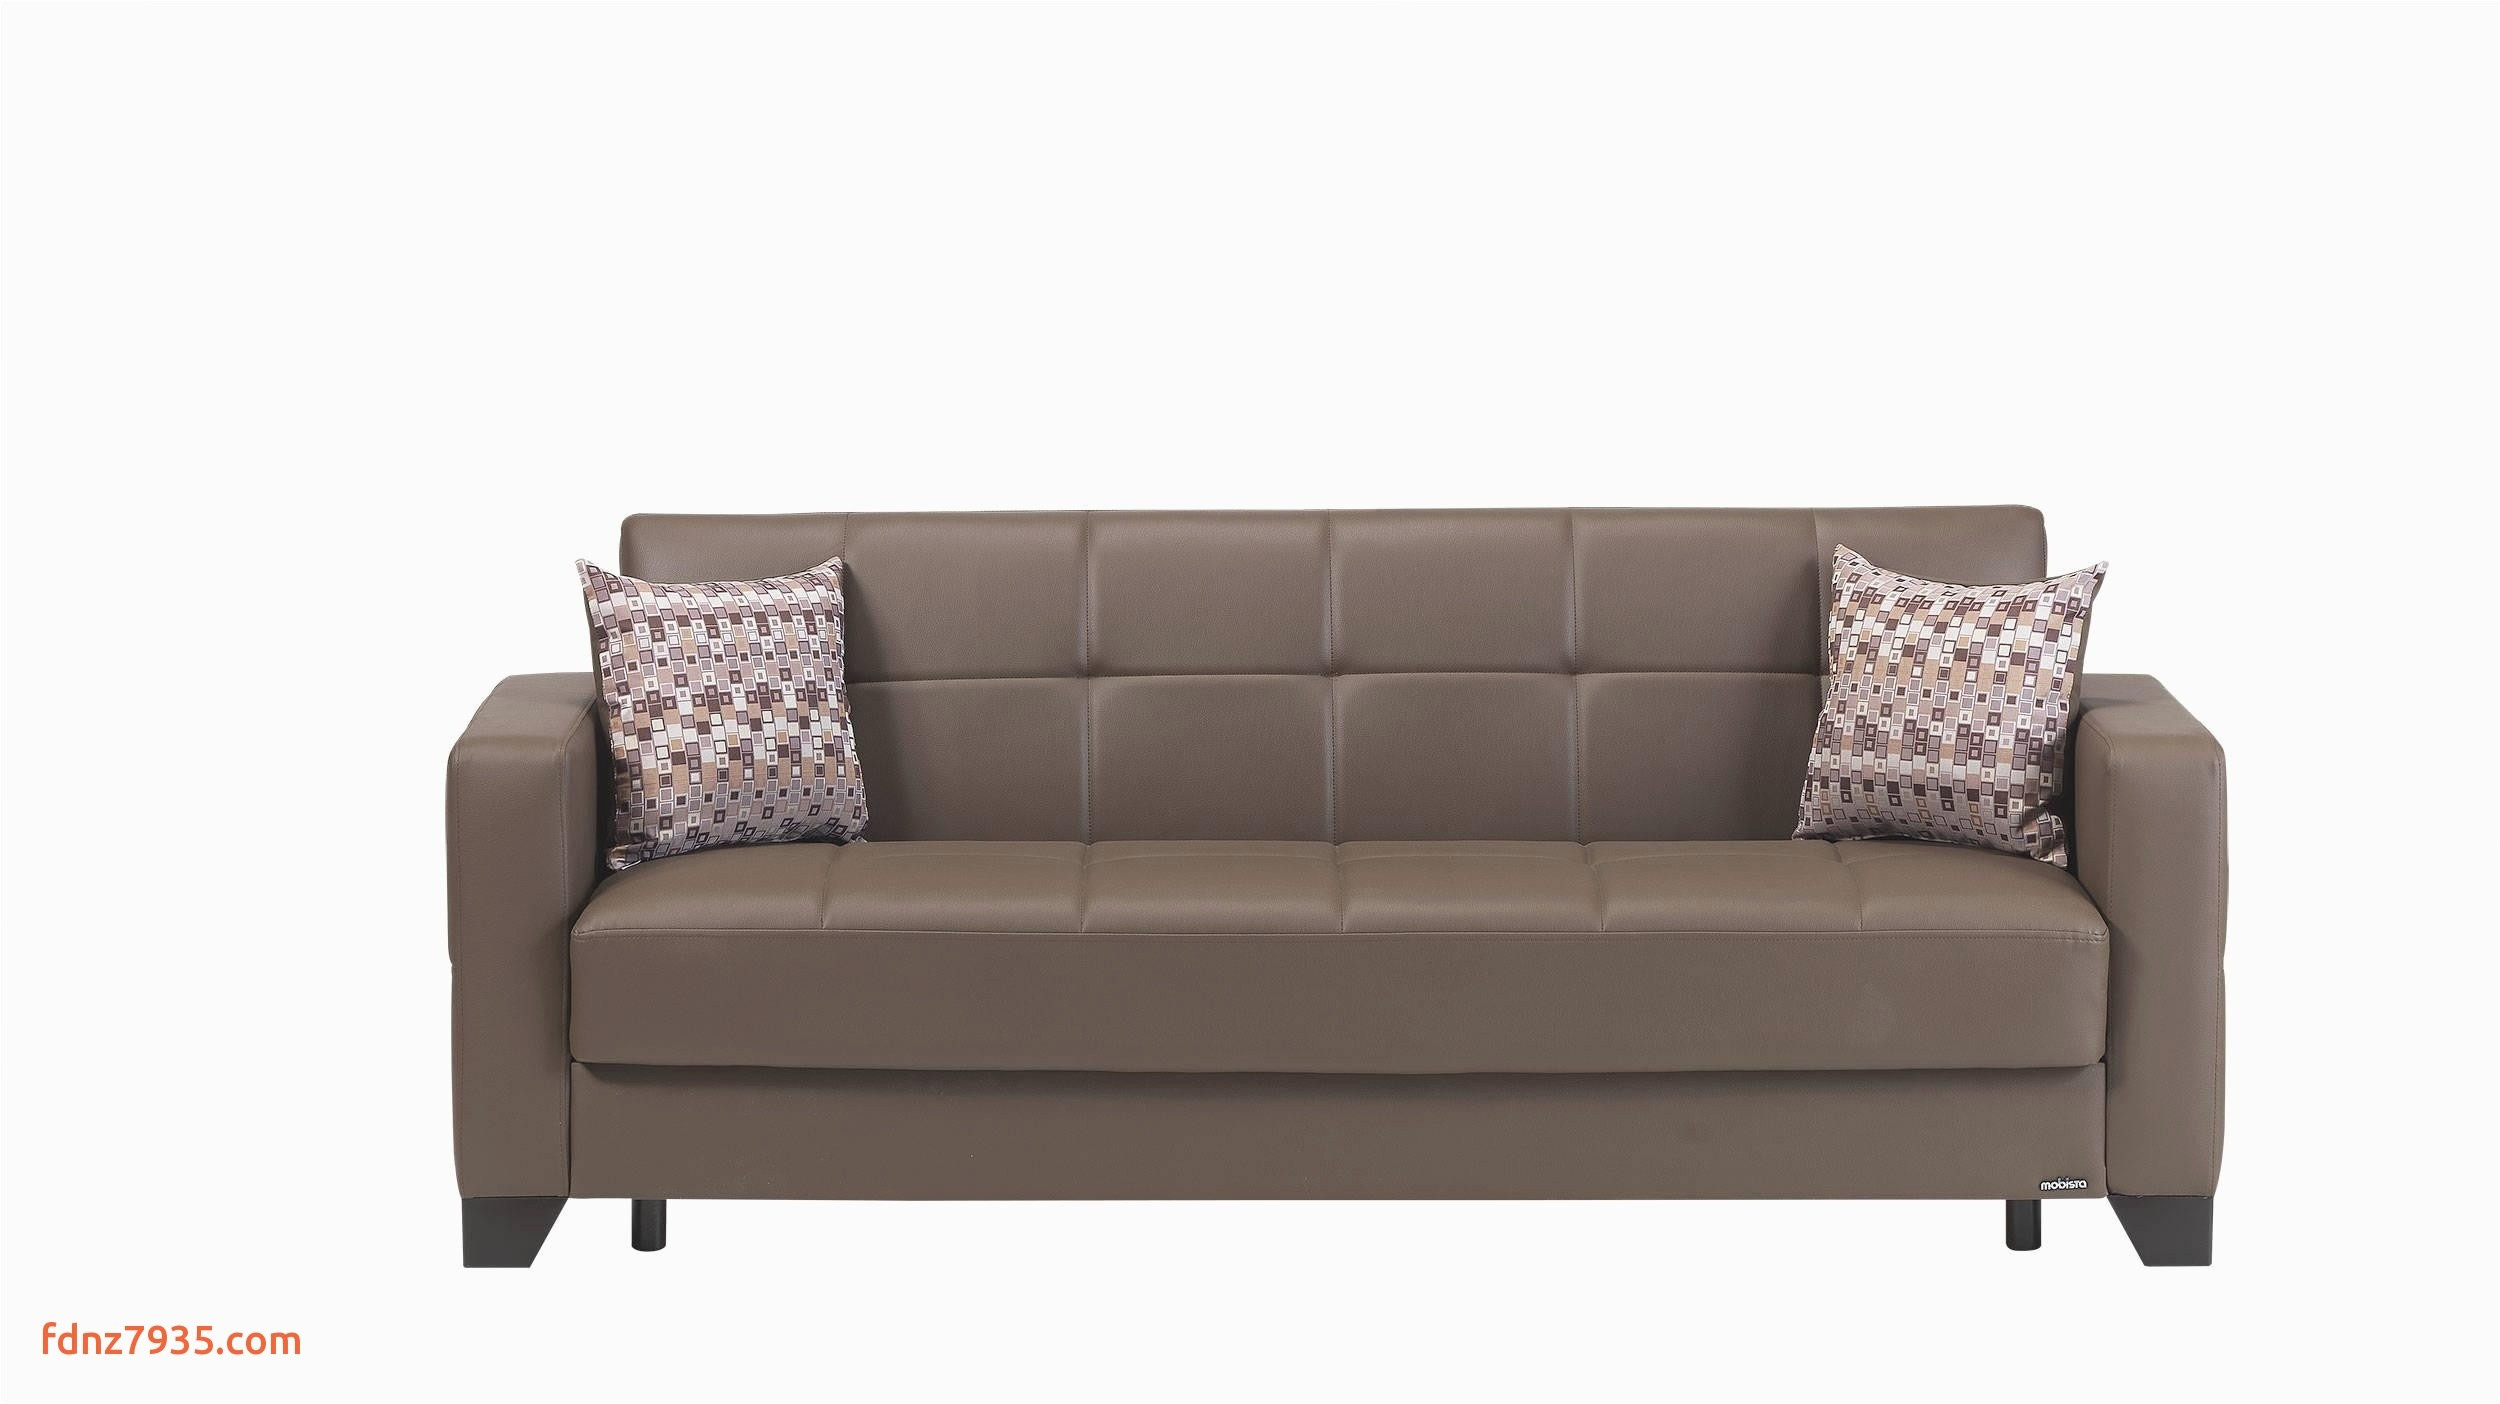 craigslist sofa bed awesome furniture settee loveseat luxury navy loveseat 0d tags wonderful awesome memory foam